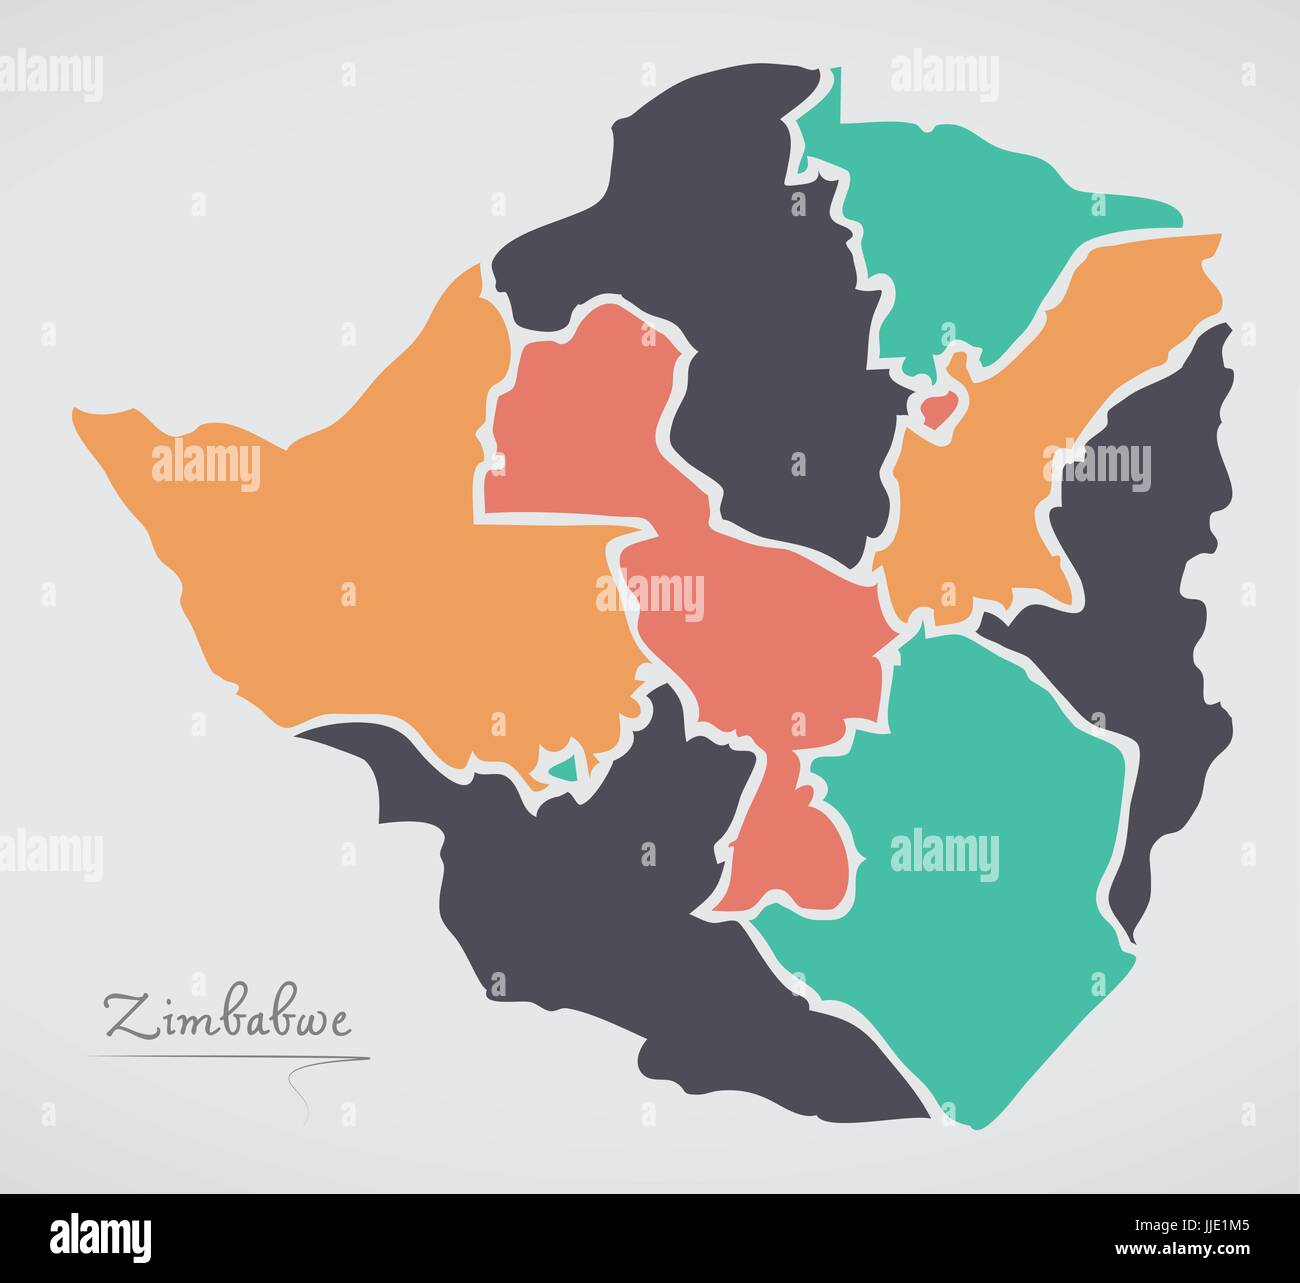 Zimbabwe map with states and modern round shapes stock vector art zimbabwe map with states and modern round shapes gumiabroncs Image collections